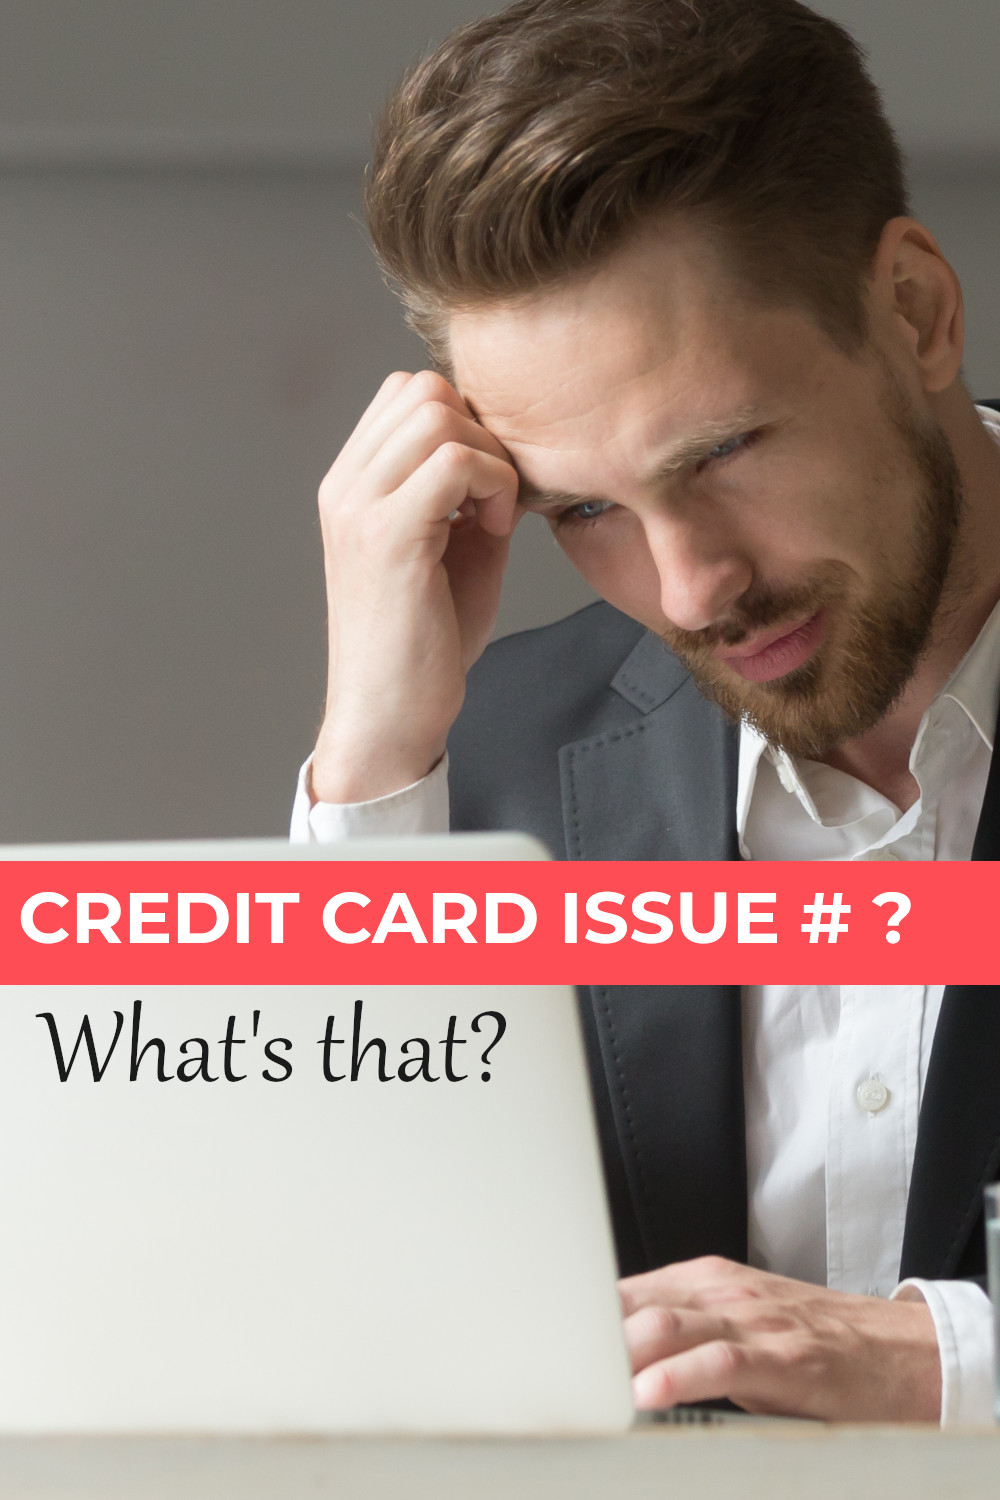 What is a credit card issue number and what do you use it for?